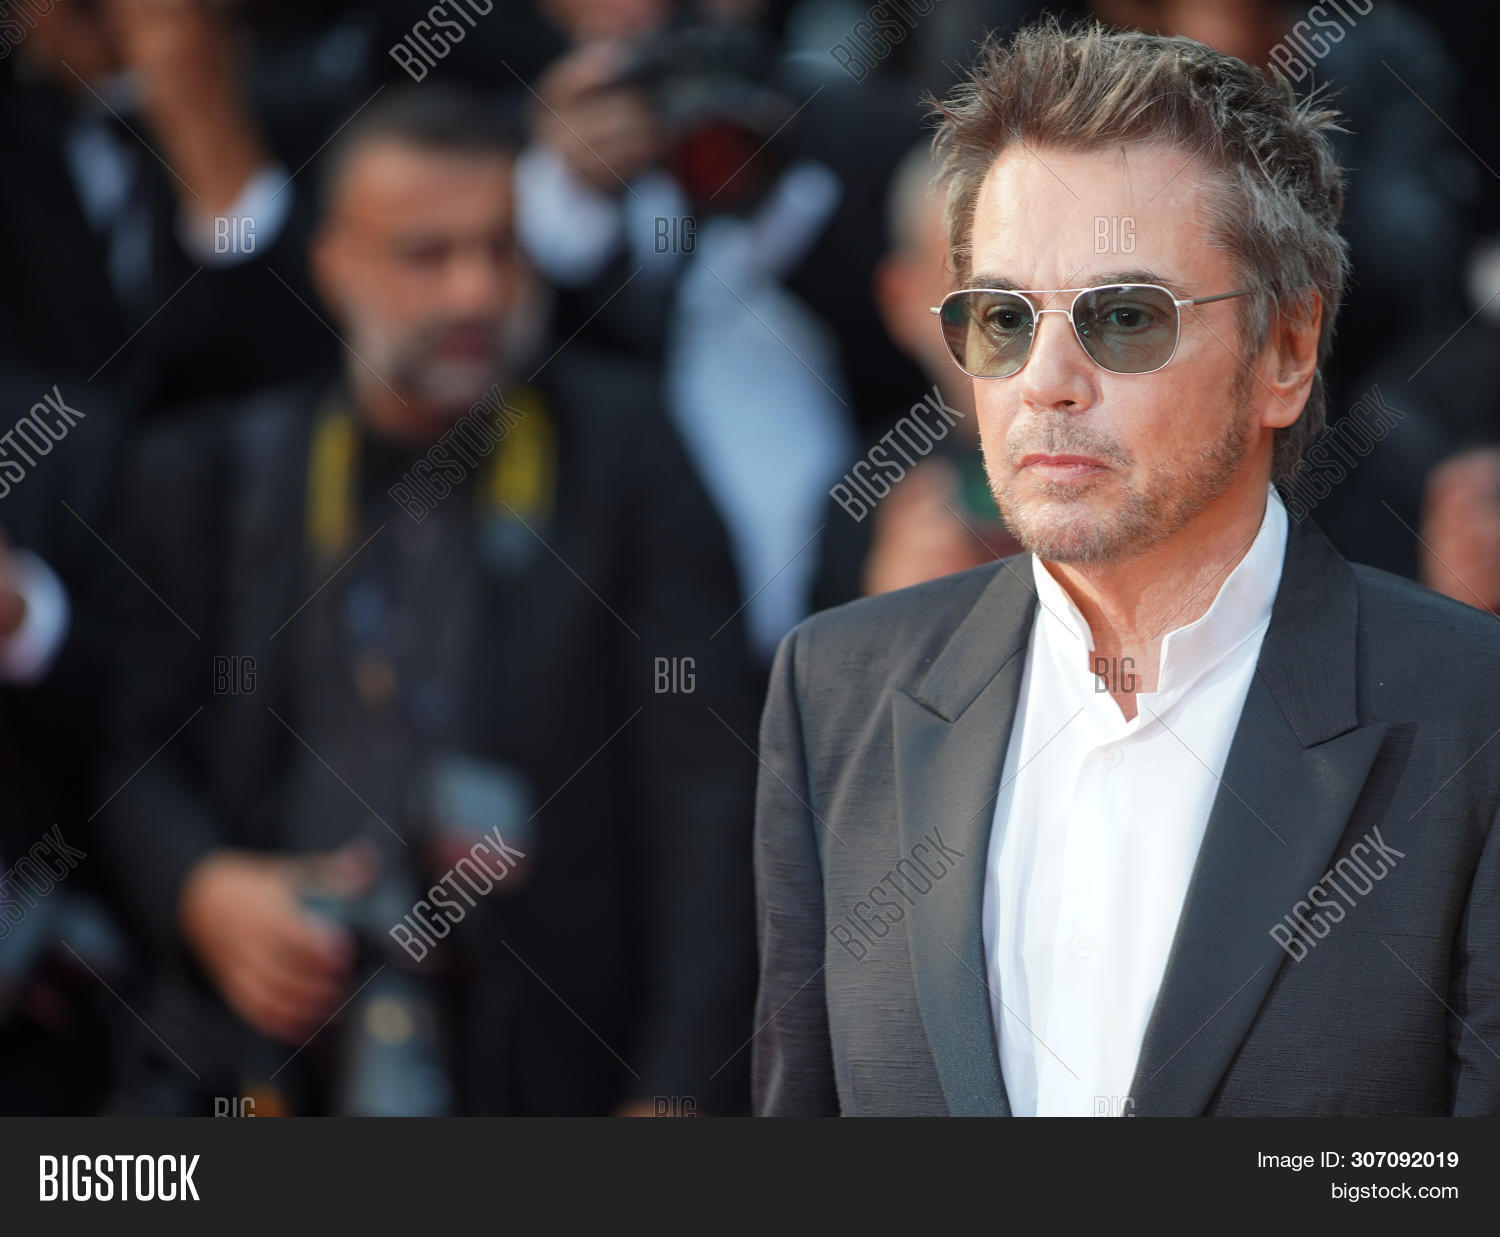 jean michel jarre new album 2019